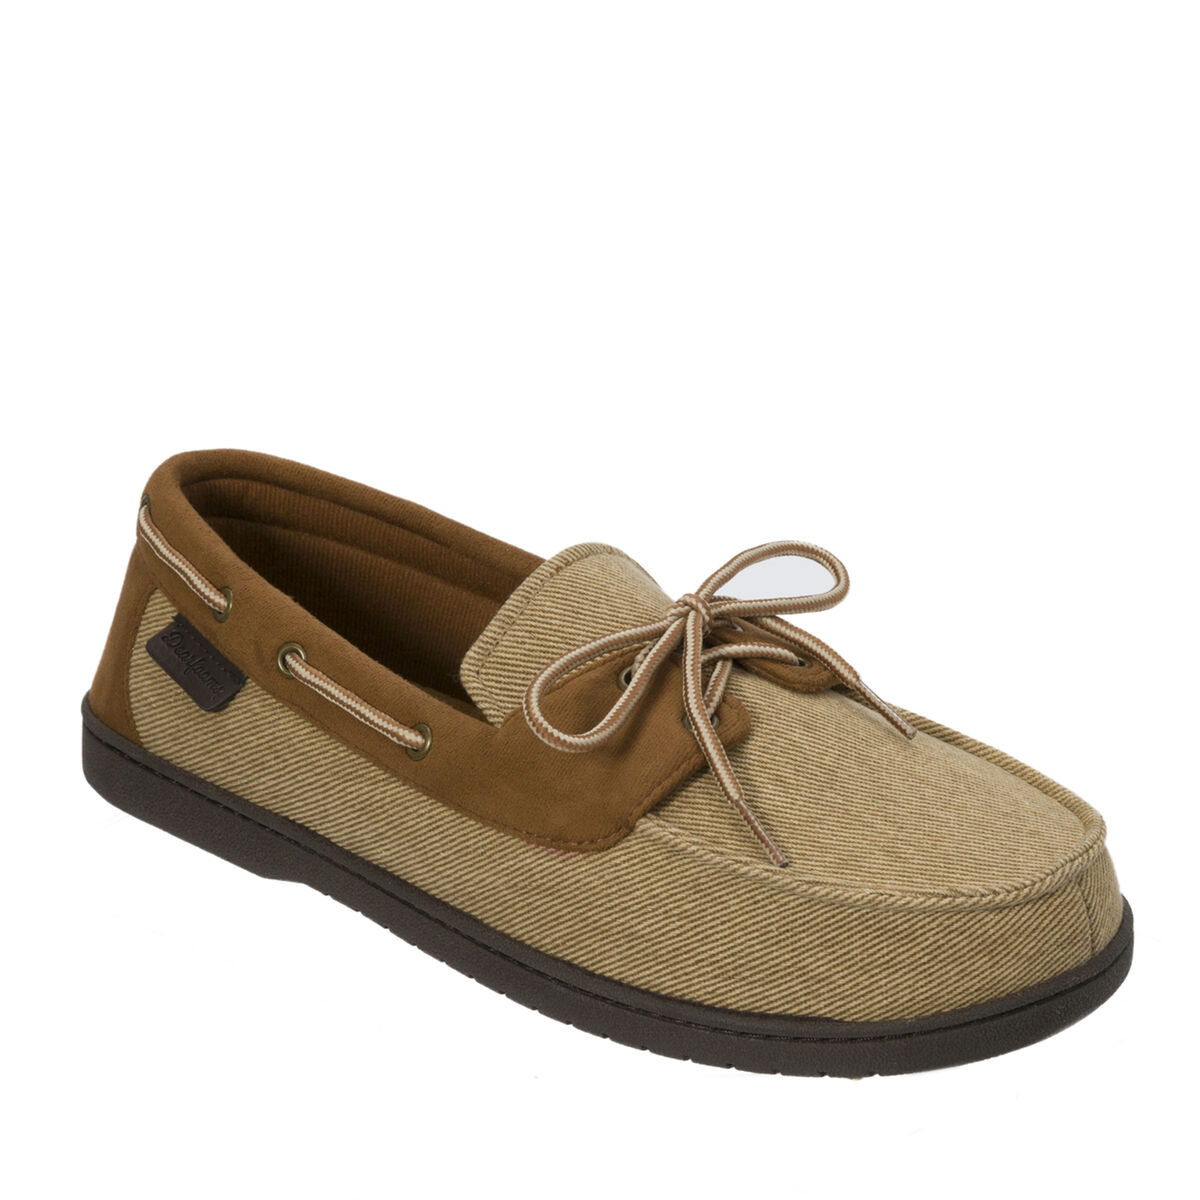 Twill Boater Moccasin with Memory Foam